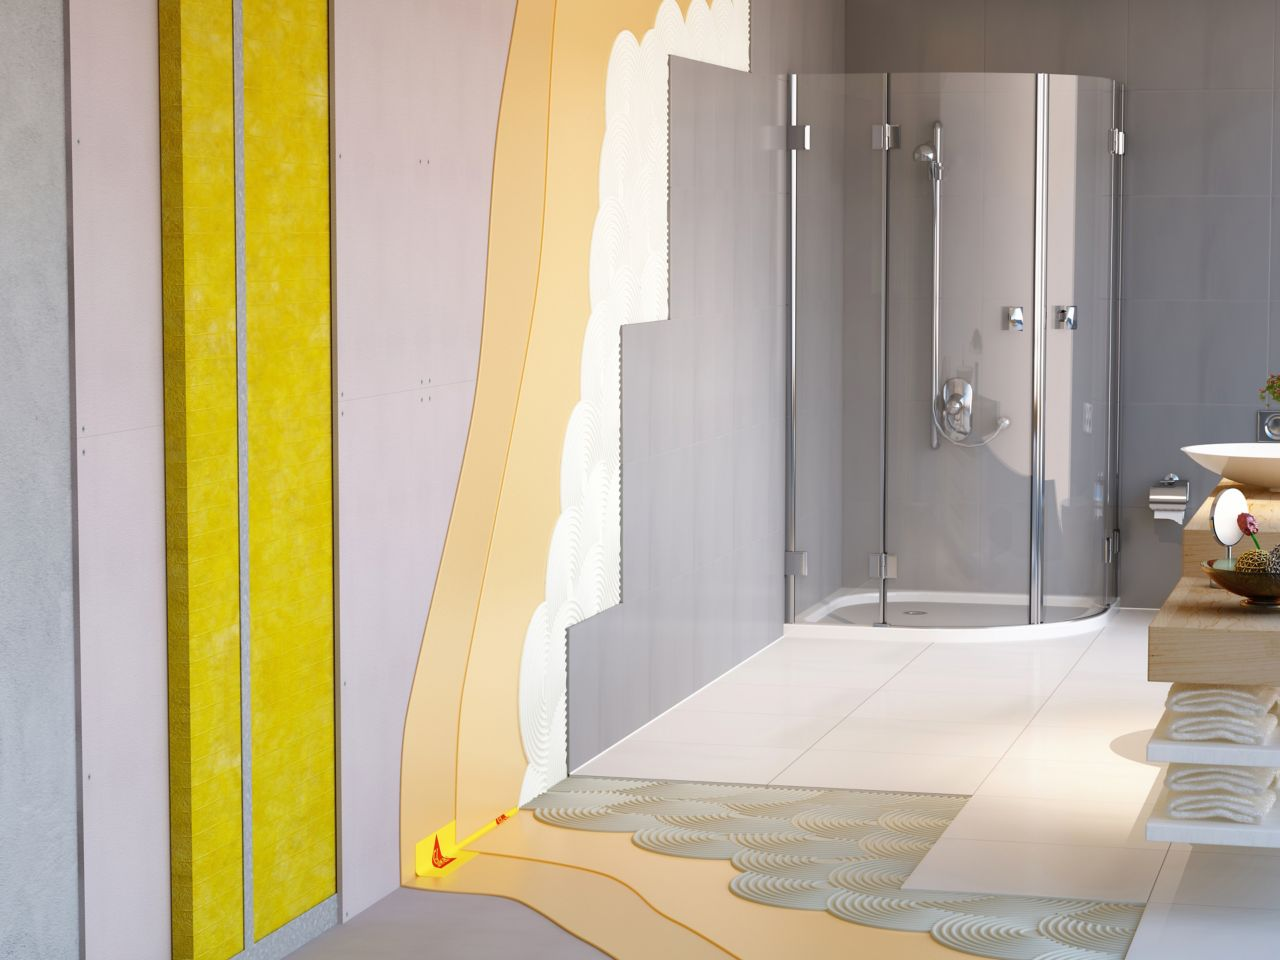 Illustration of tile setting adhesives waterproofing in wet area bathroom with shower stall and wall insulation